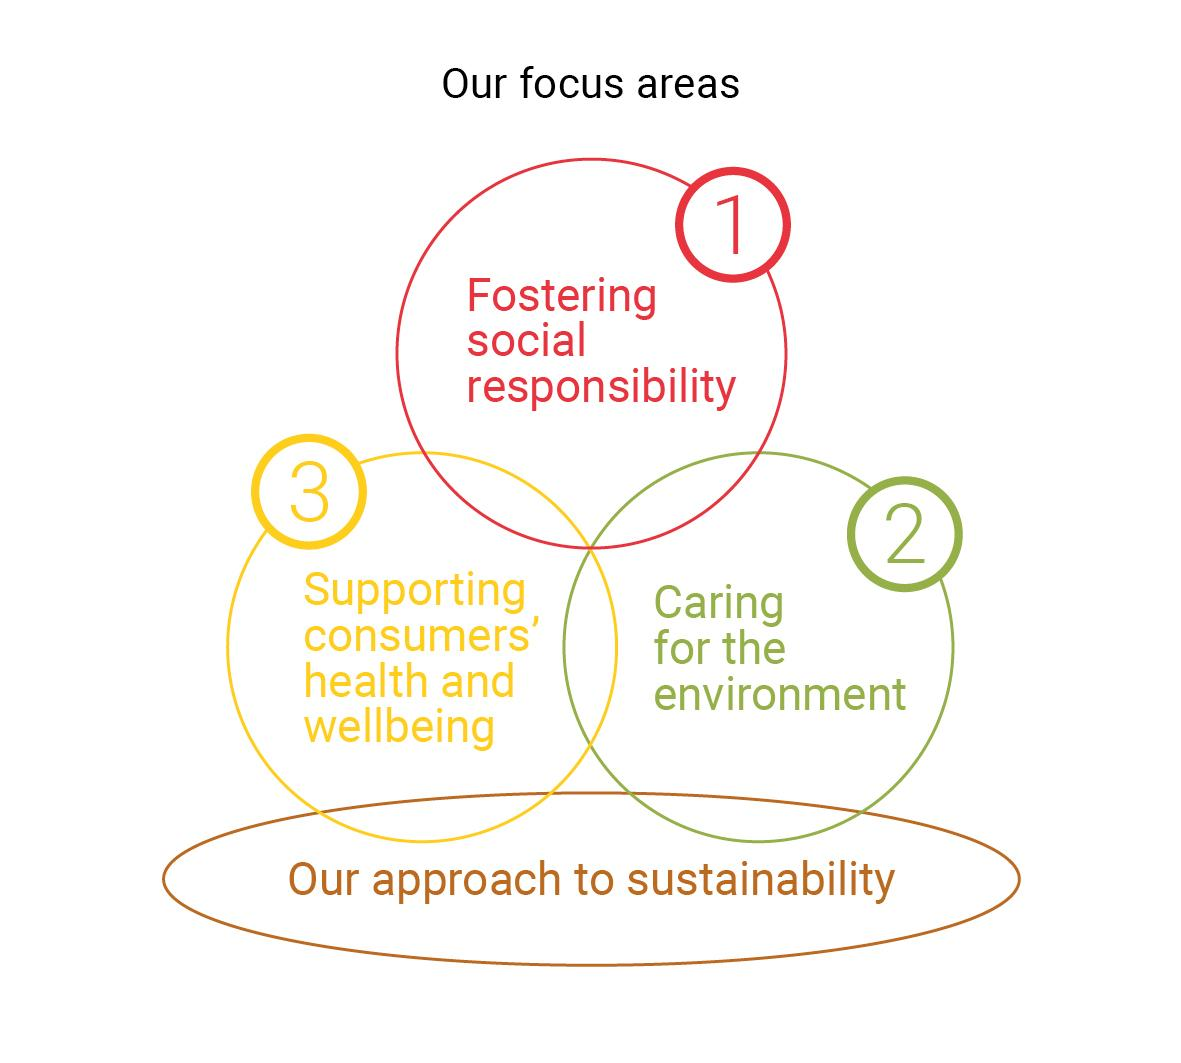 Sustainability focus areas 2018